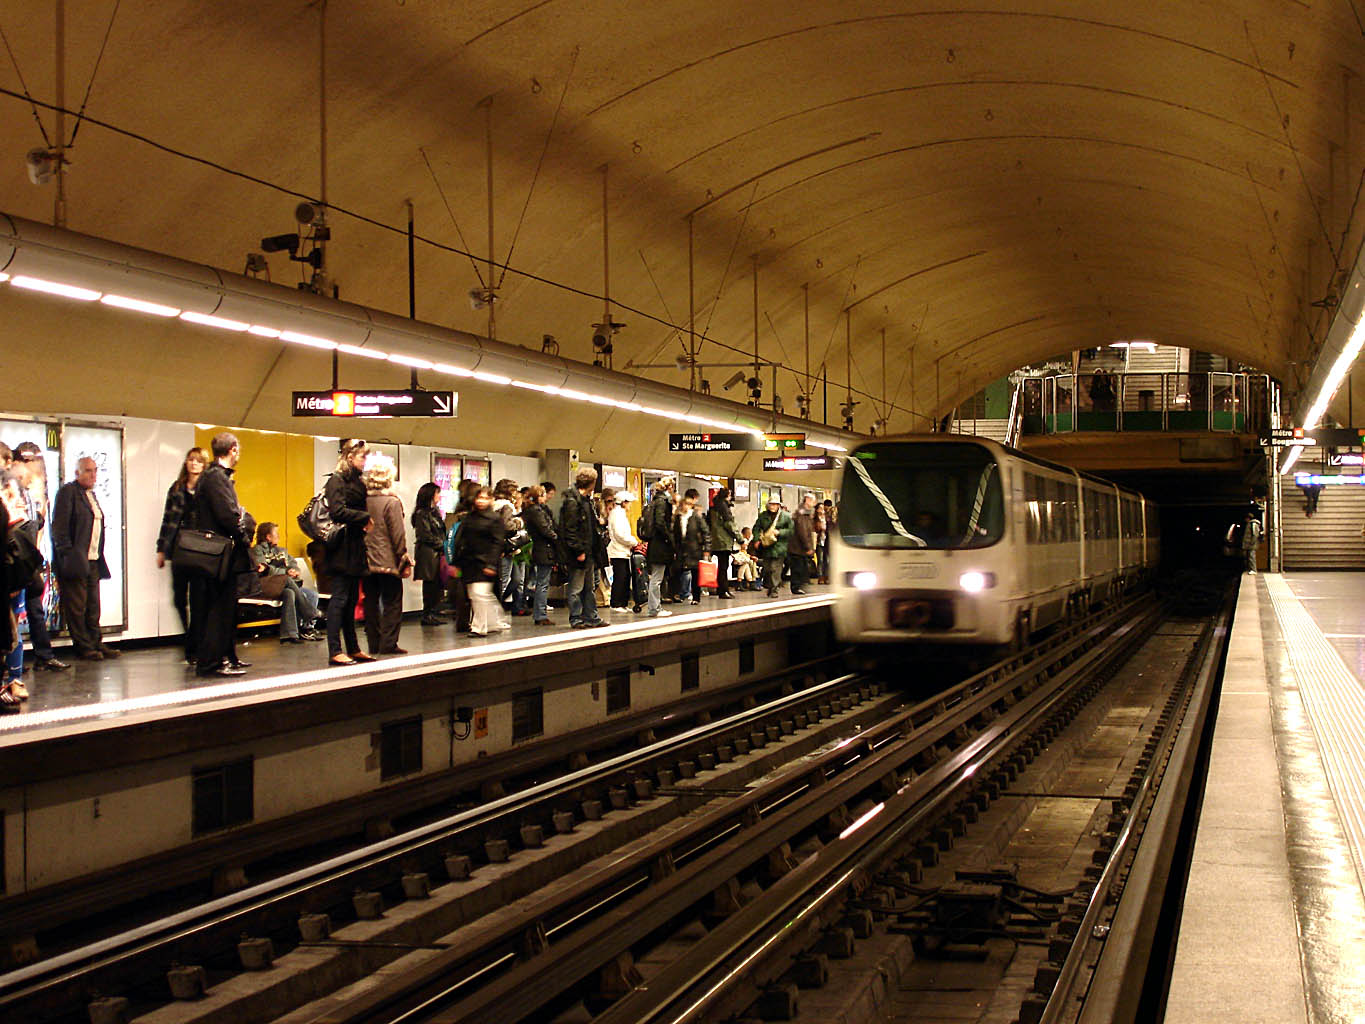 Marseille metro with Alstom train